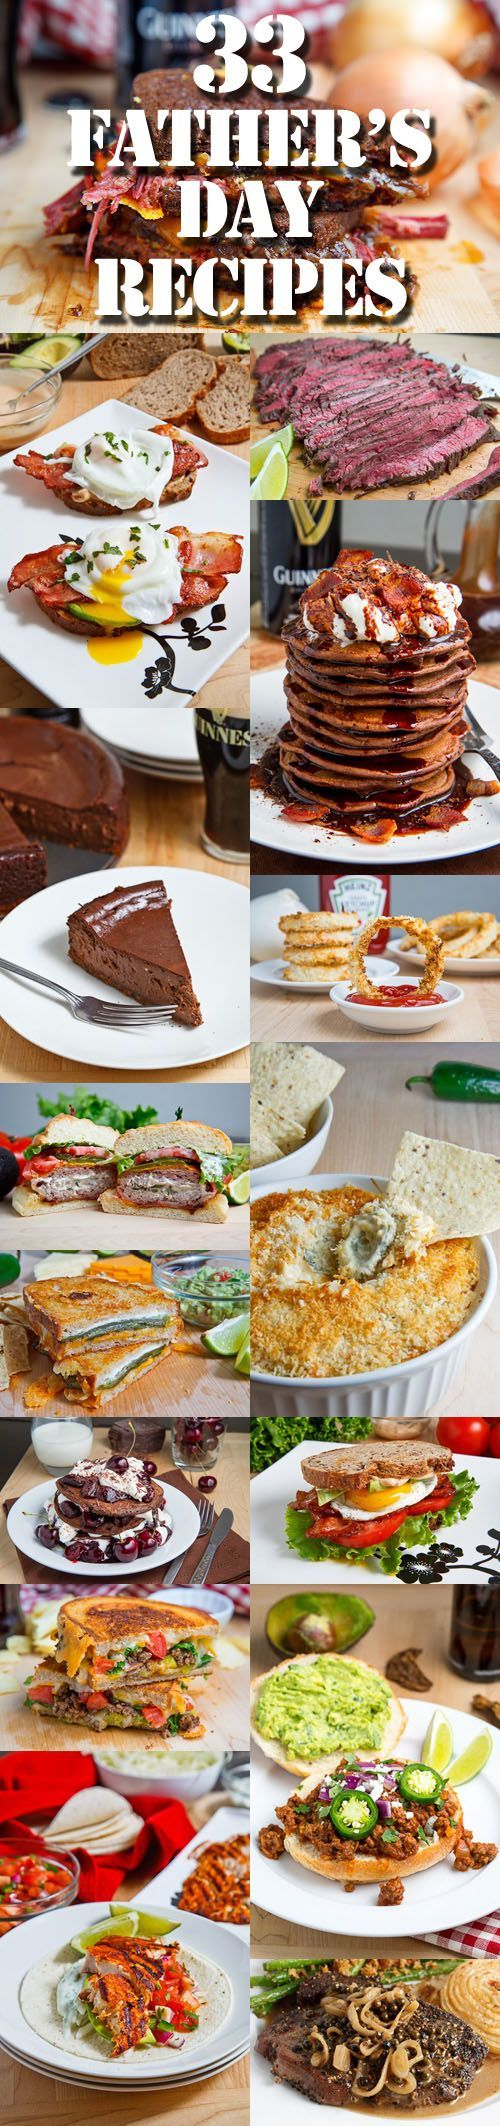 Show dad how much you care on Father's Day with some tasty home cooked meals!